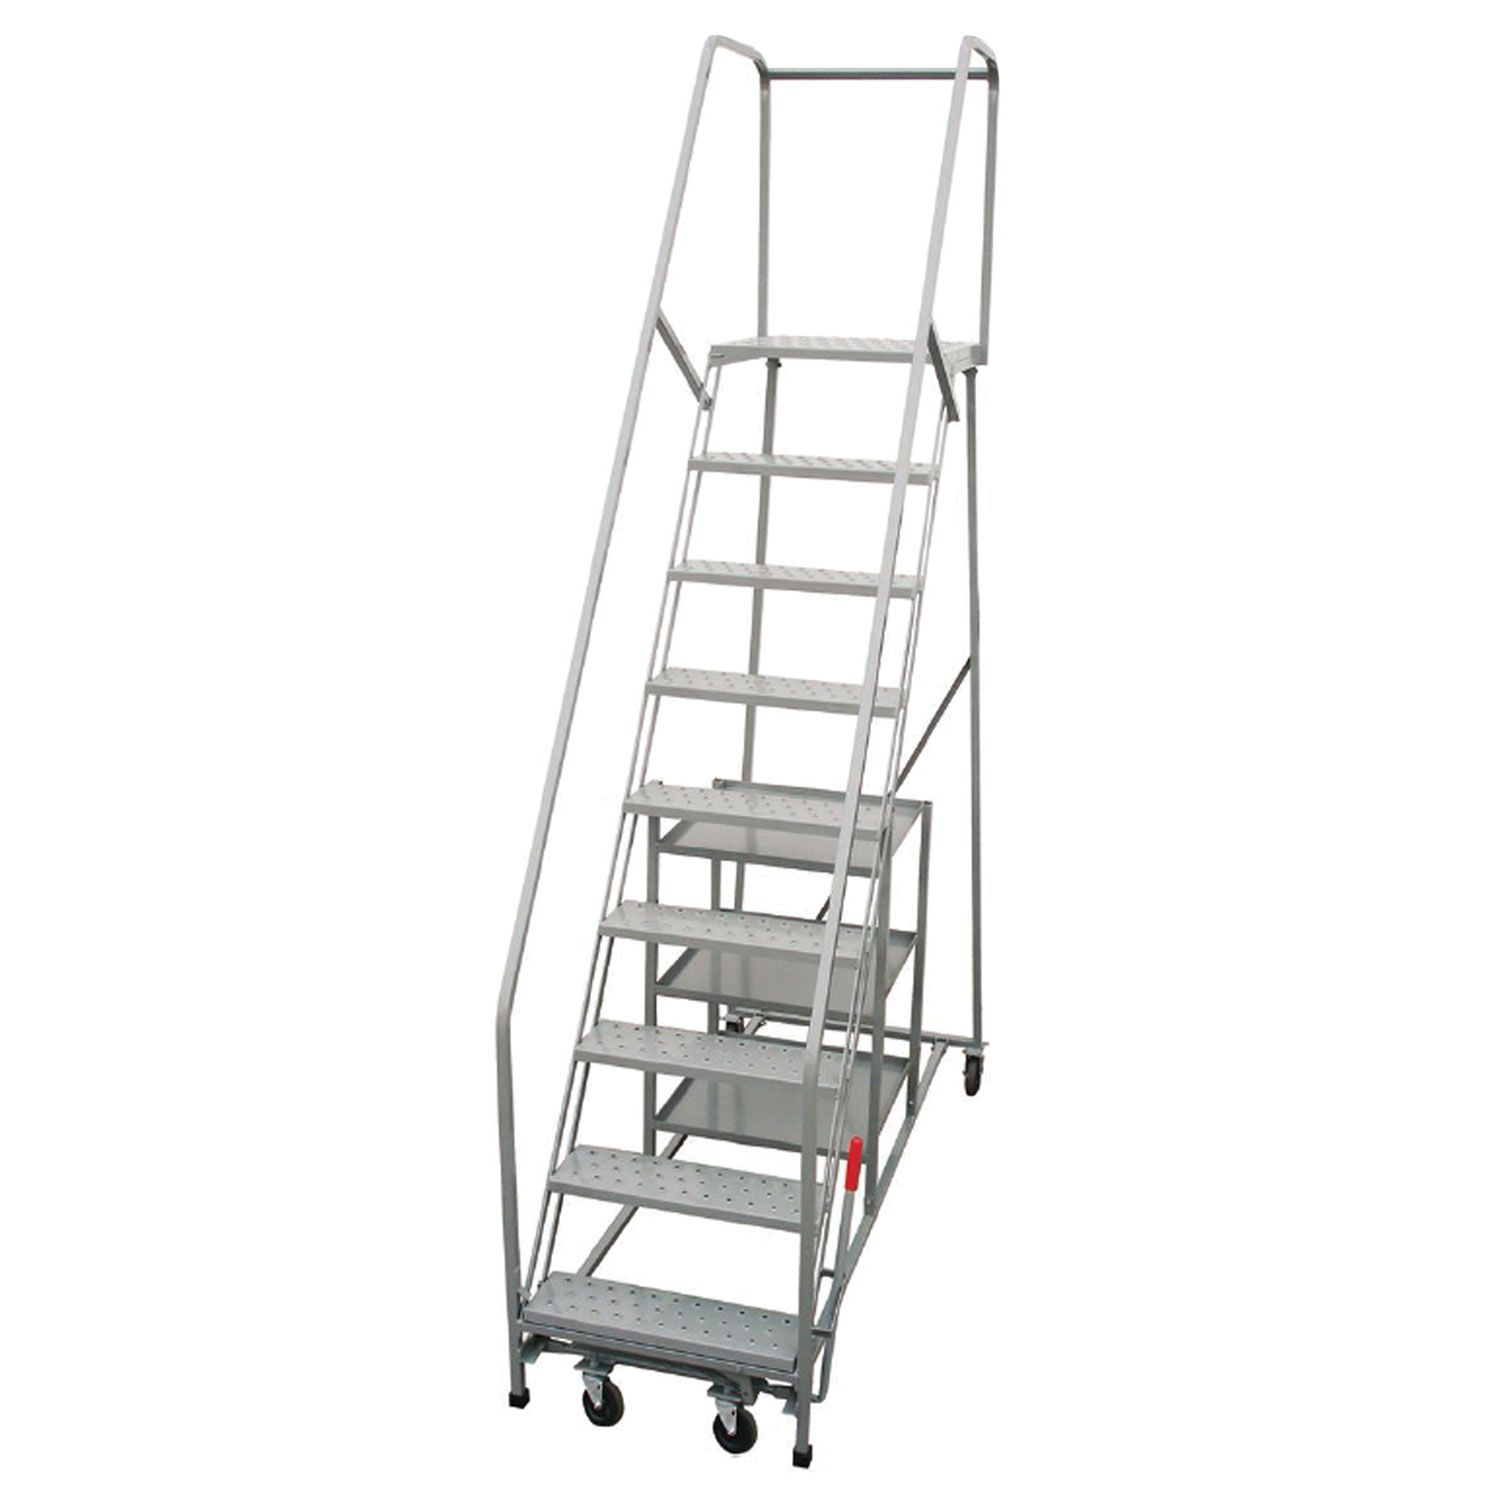 Ladders Stock Pickers P W Platforms 11 Step Steel Rolling Stock Picker Ladder 24 Step Width Sp11sh30w21 B2058214 Globalindustrial Com Ladder Home